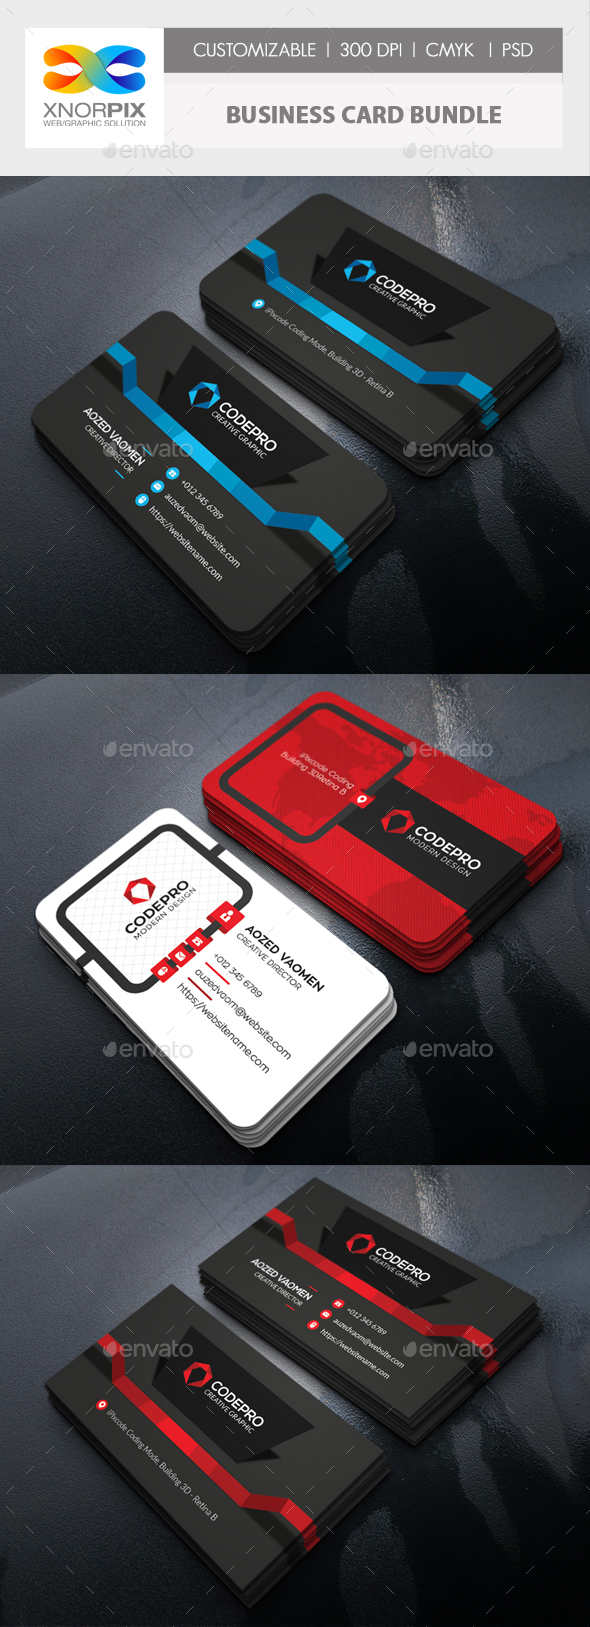 Magnificent Graphicriver Business Card Images - Business Card ...